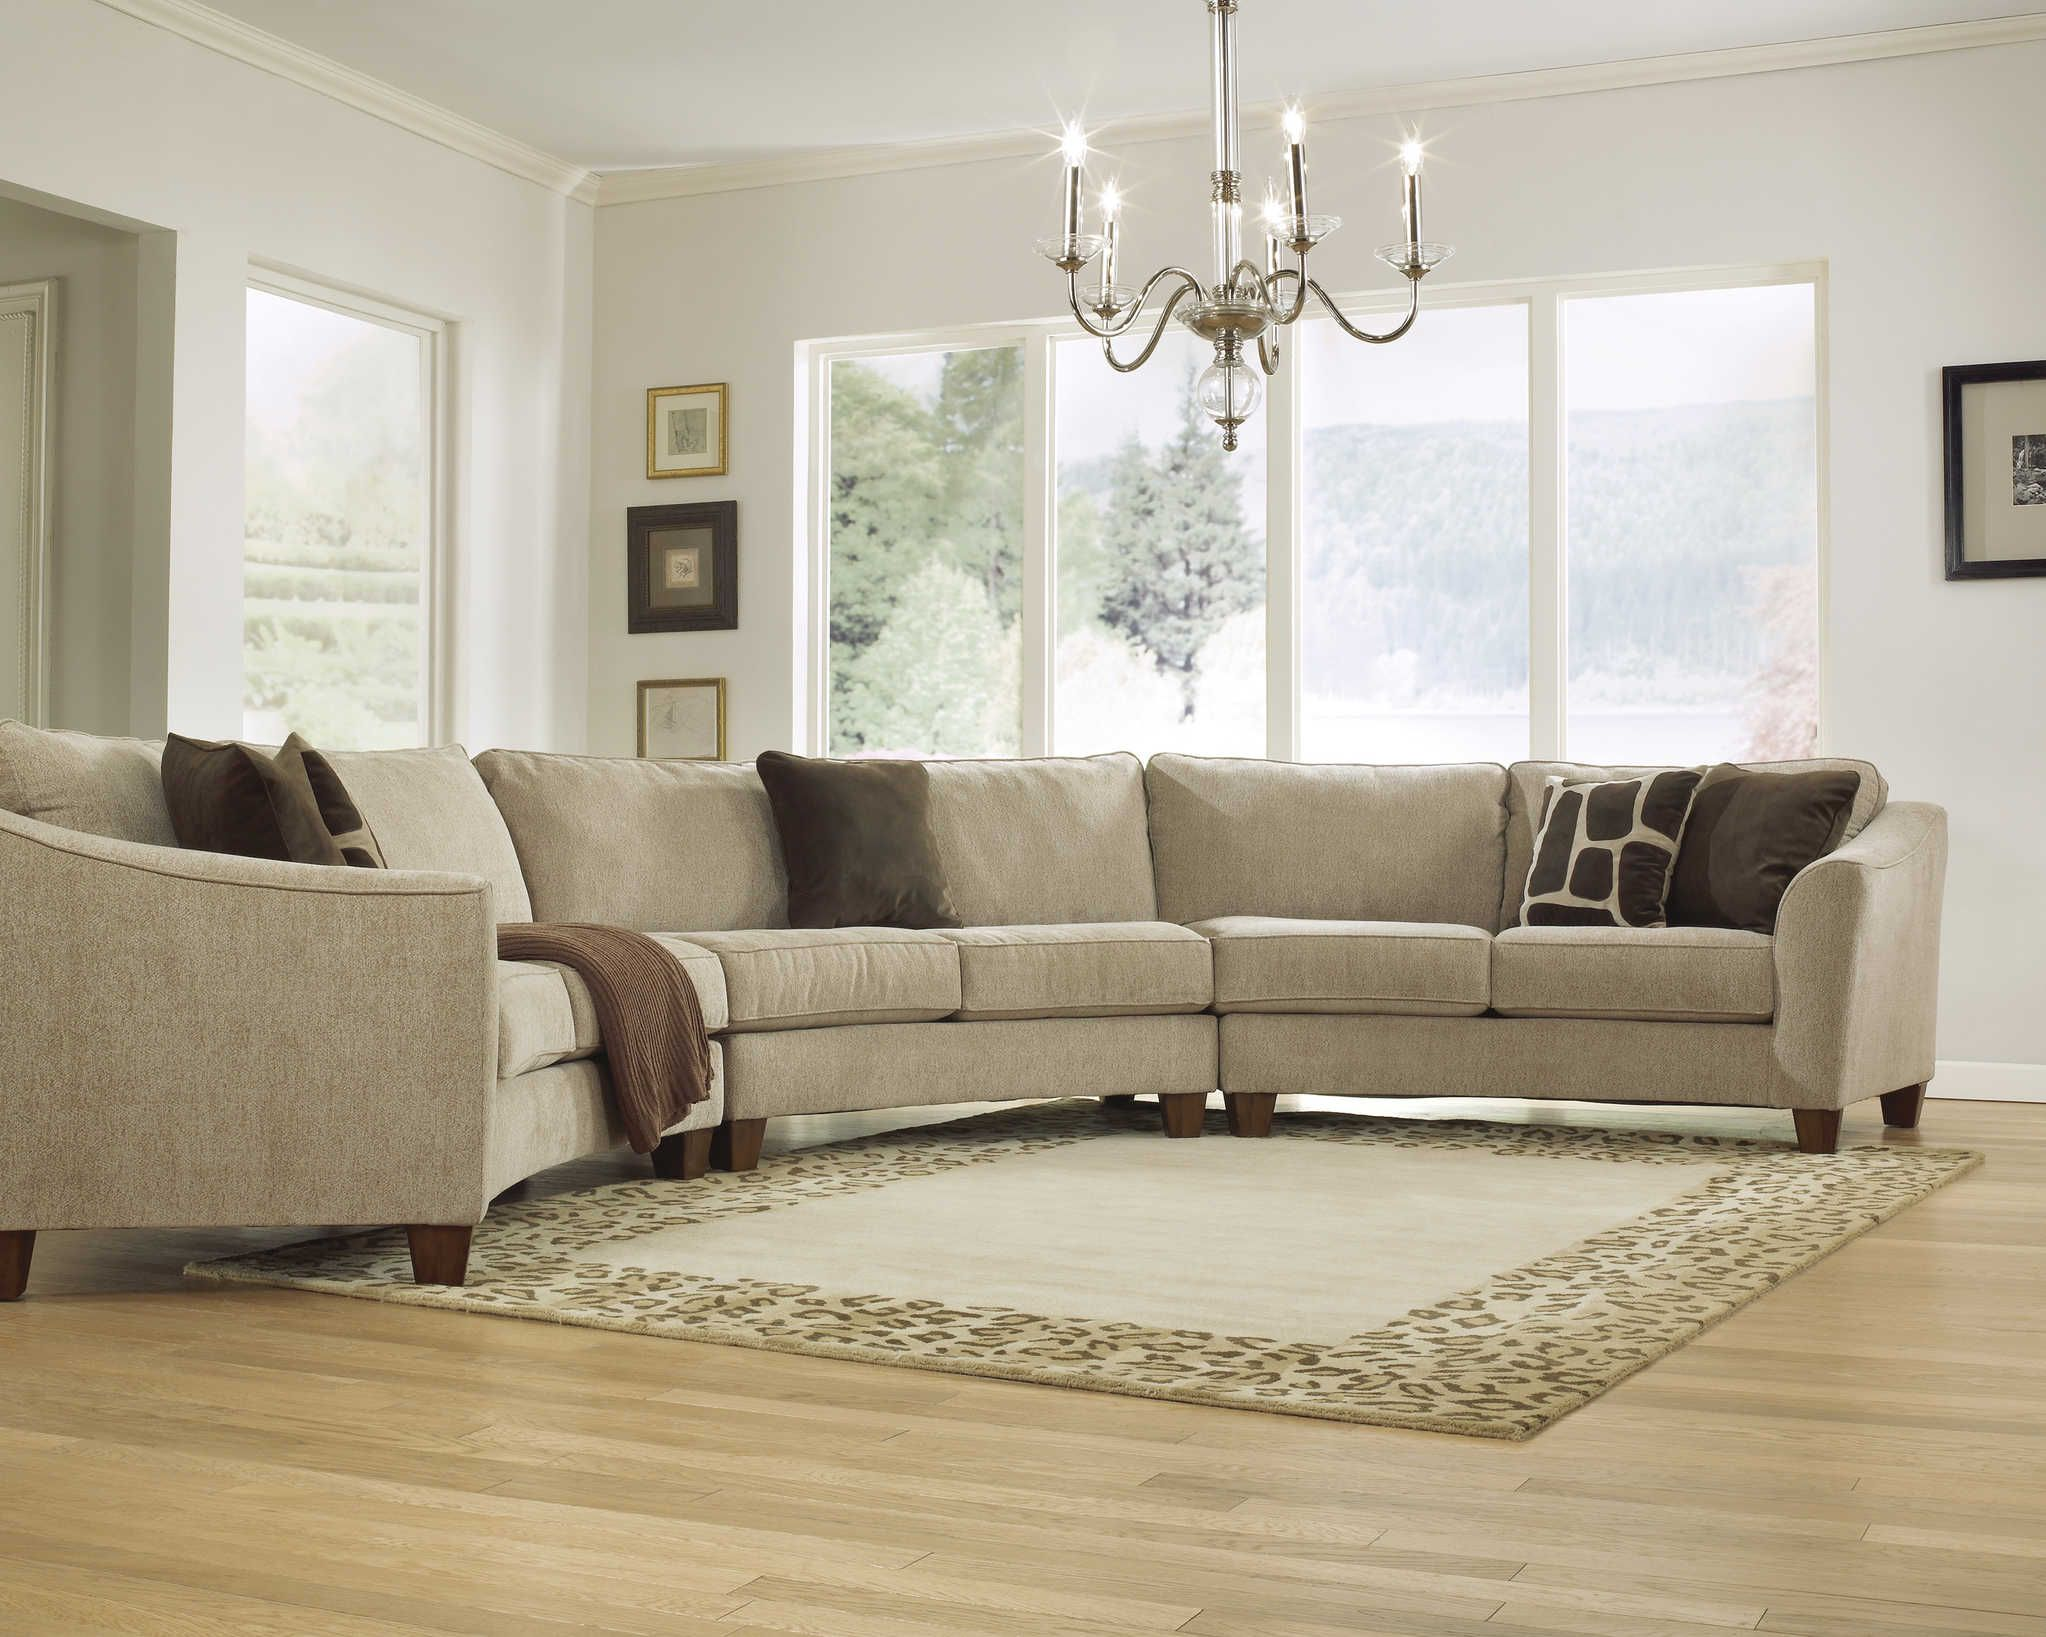 Living Room Designs With Sectionals Beauteous 2959Curvaceous Beauty  Curved Sectional Sofa Set In Classic Inspiration